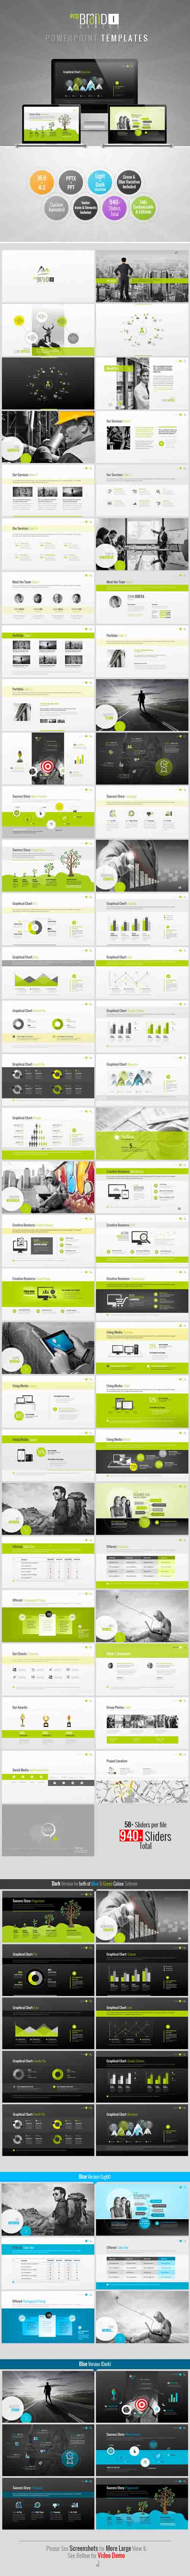 GR - ProBrand PowerPoint Templates 6035121